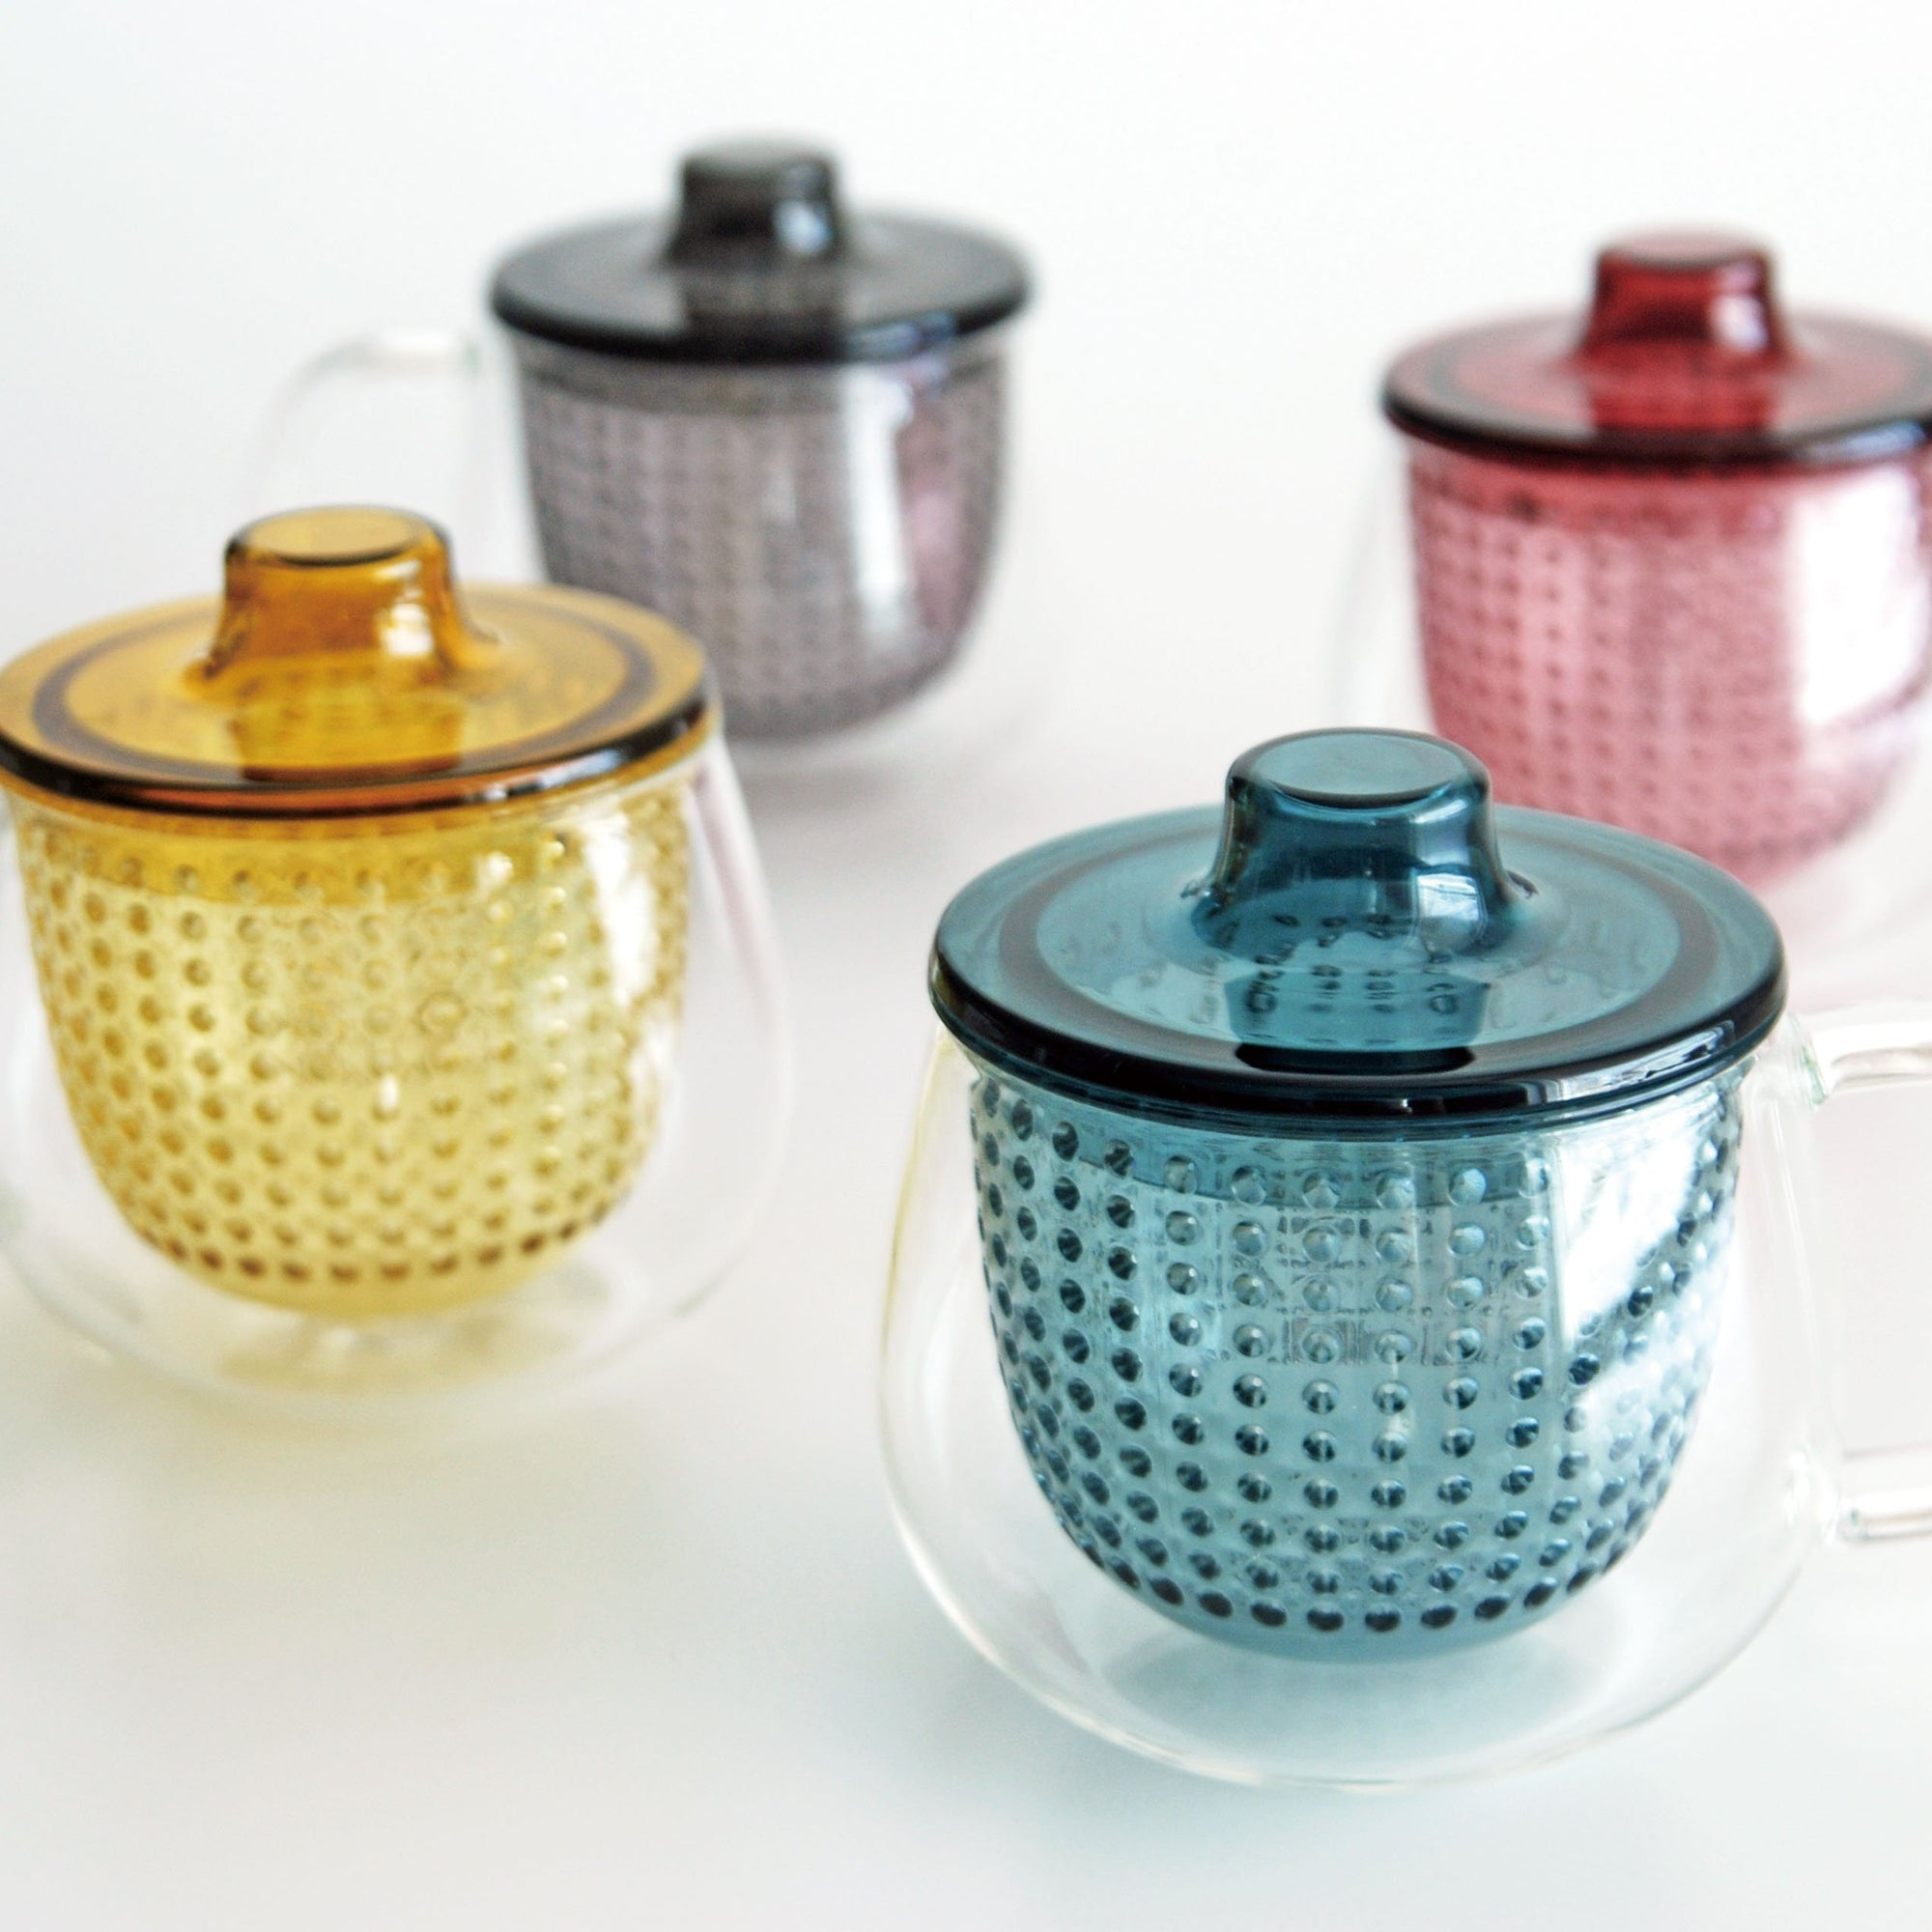 UNIMUG glass teapots in yellow, blue and red for loose leaf tea by The Rabbit Hole